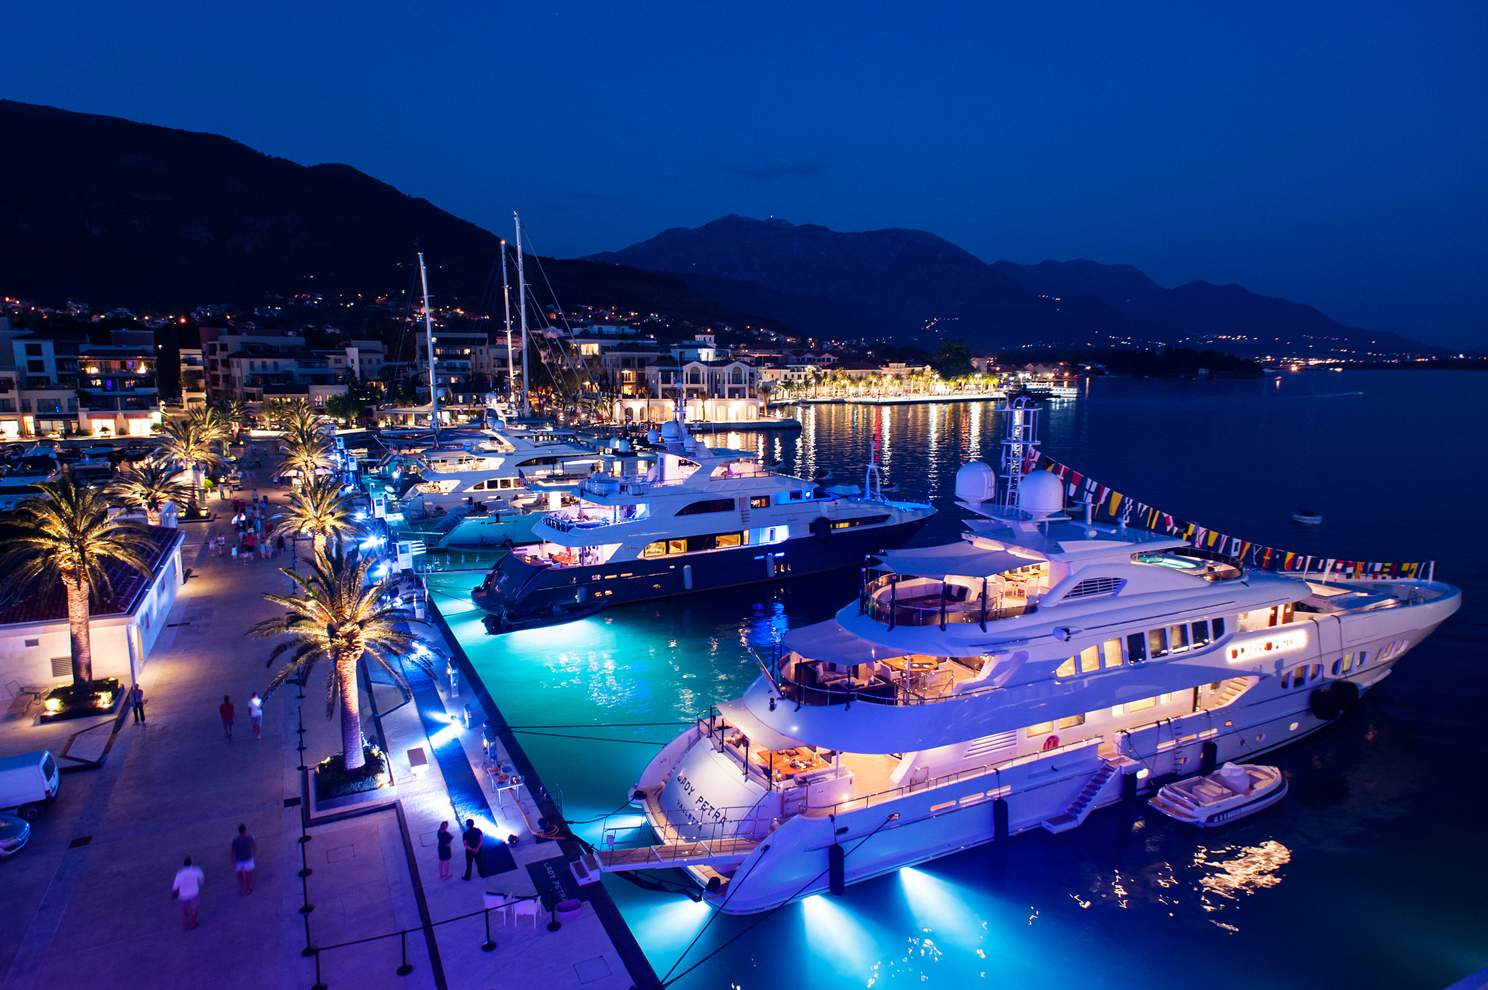 Porto Montenegro's Best Bars, Clubs & Lounges